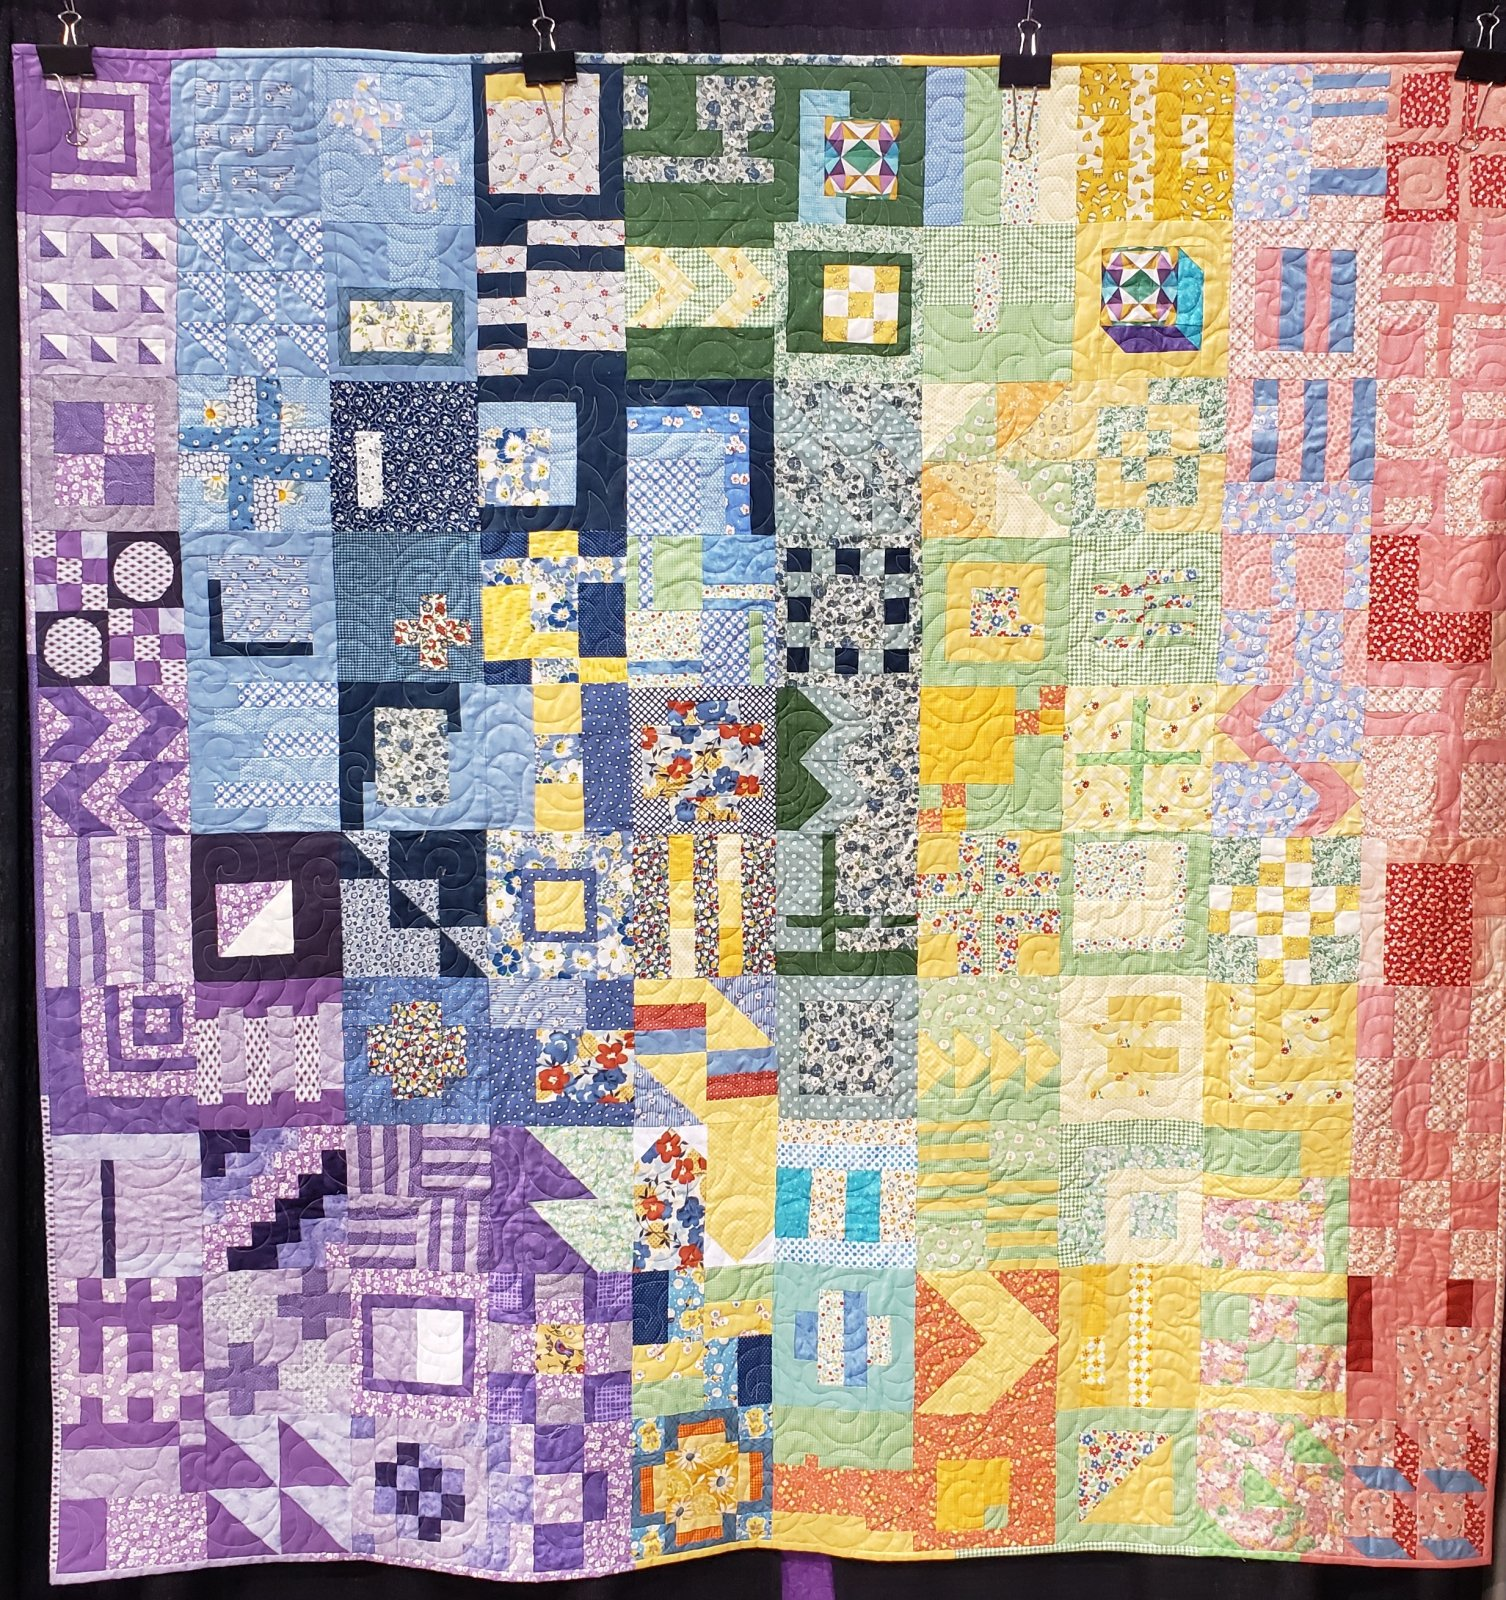 2019 Quilt Show Quilts Group 1 of 2 - Public Pictures Only